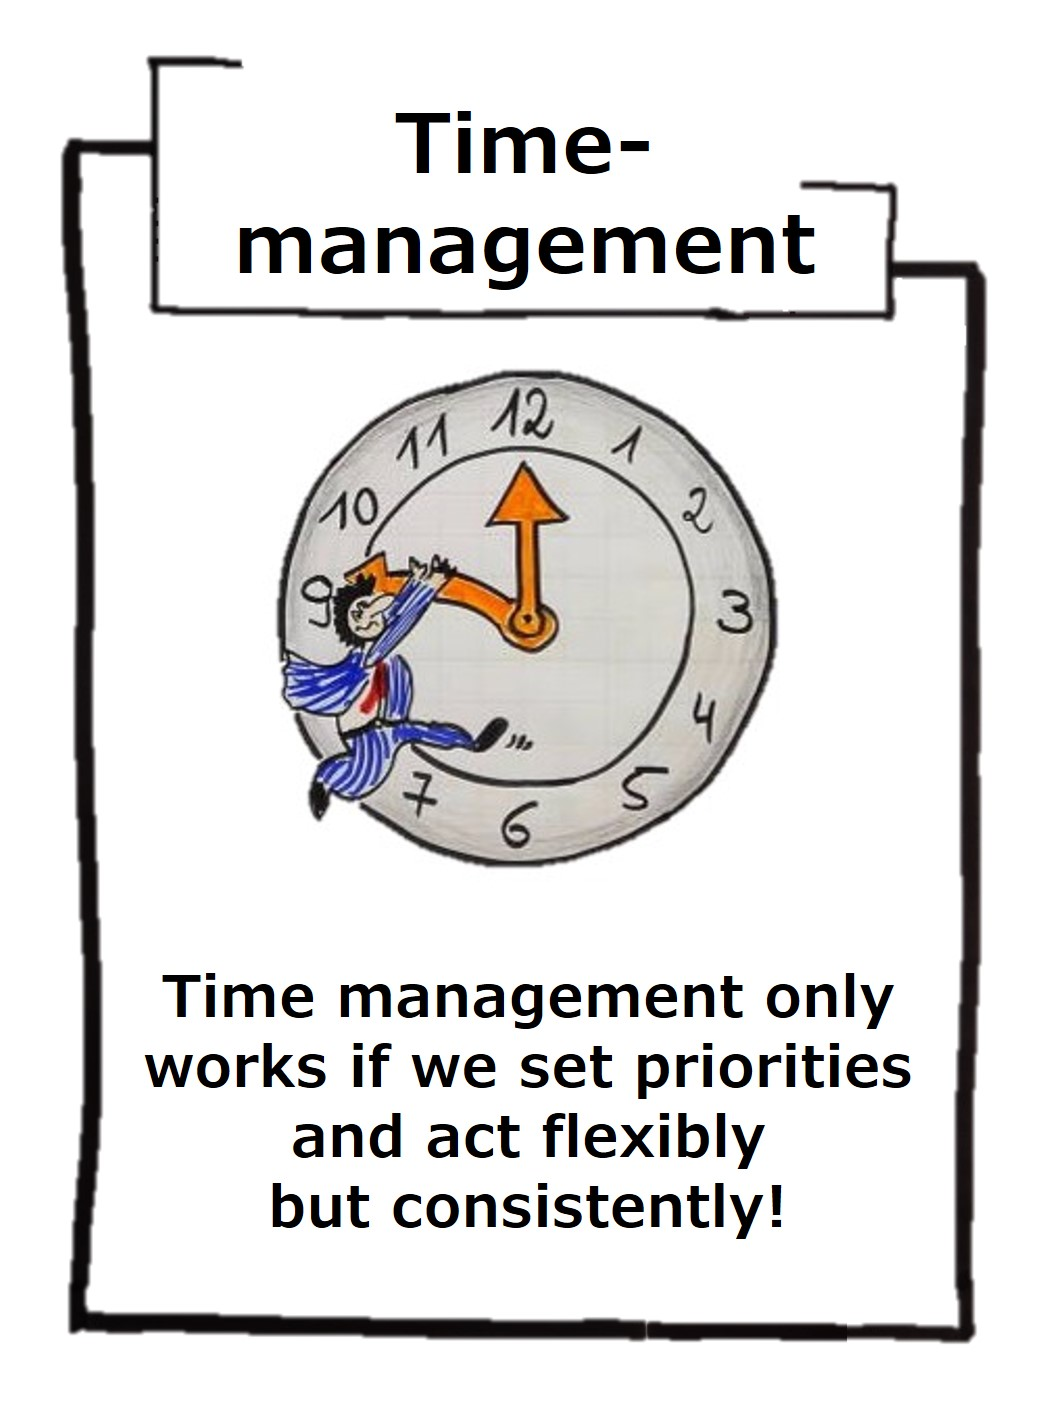 Time management is just as important as self-management, because only we are masters of our time, nobody else!